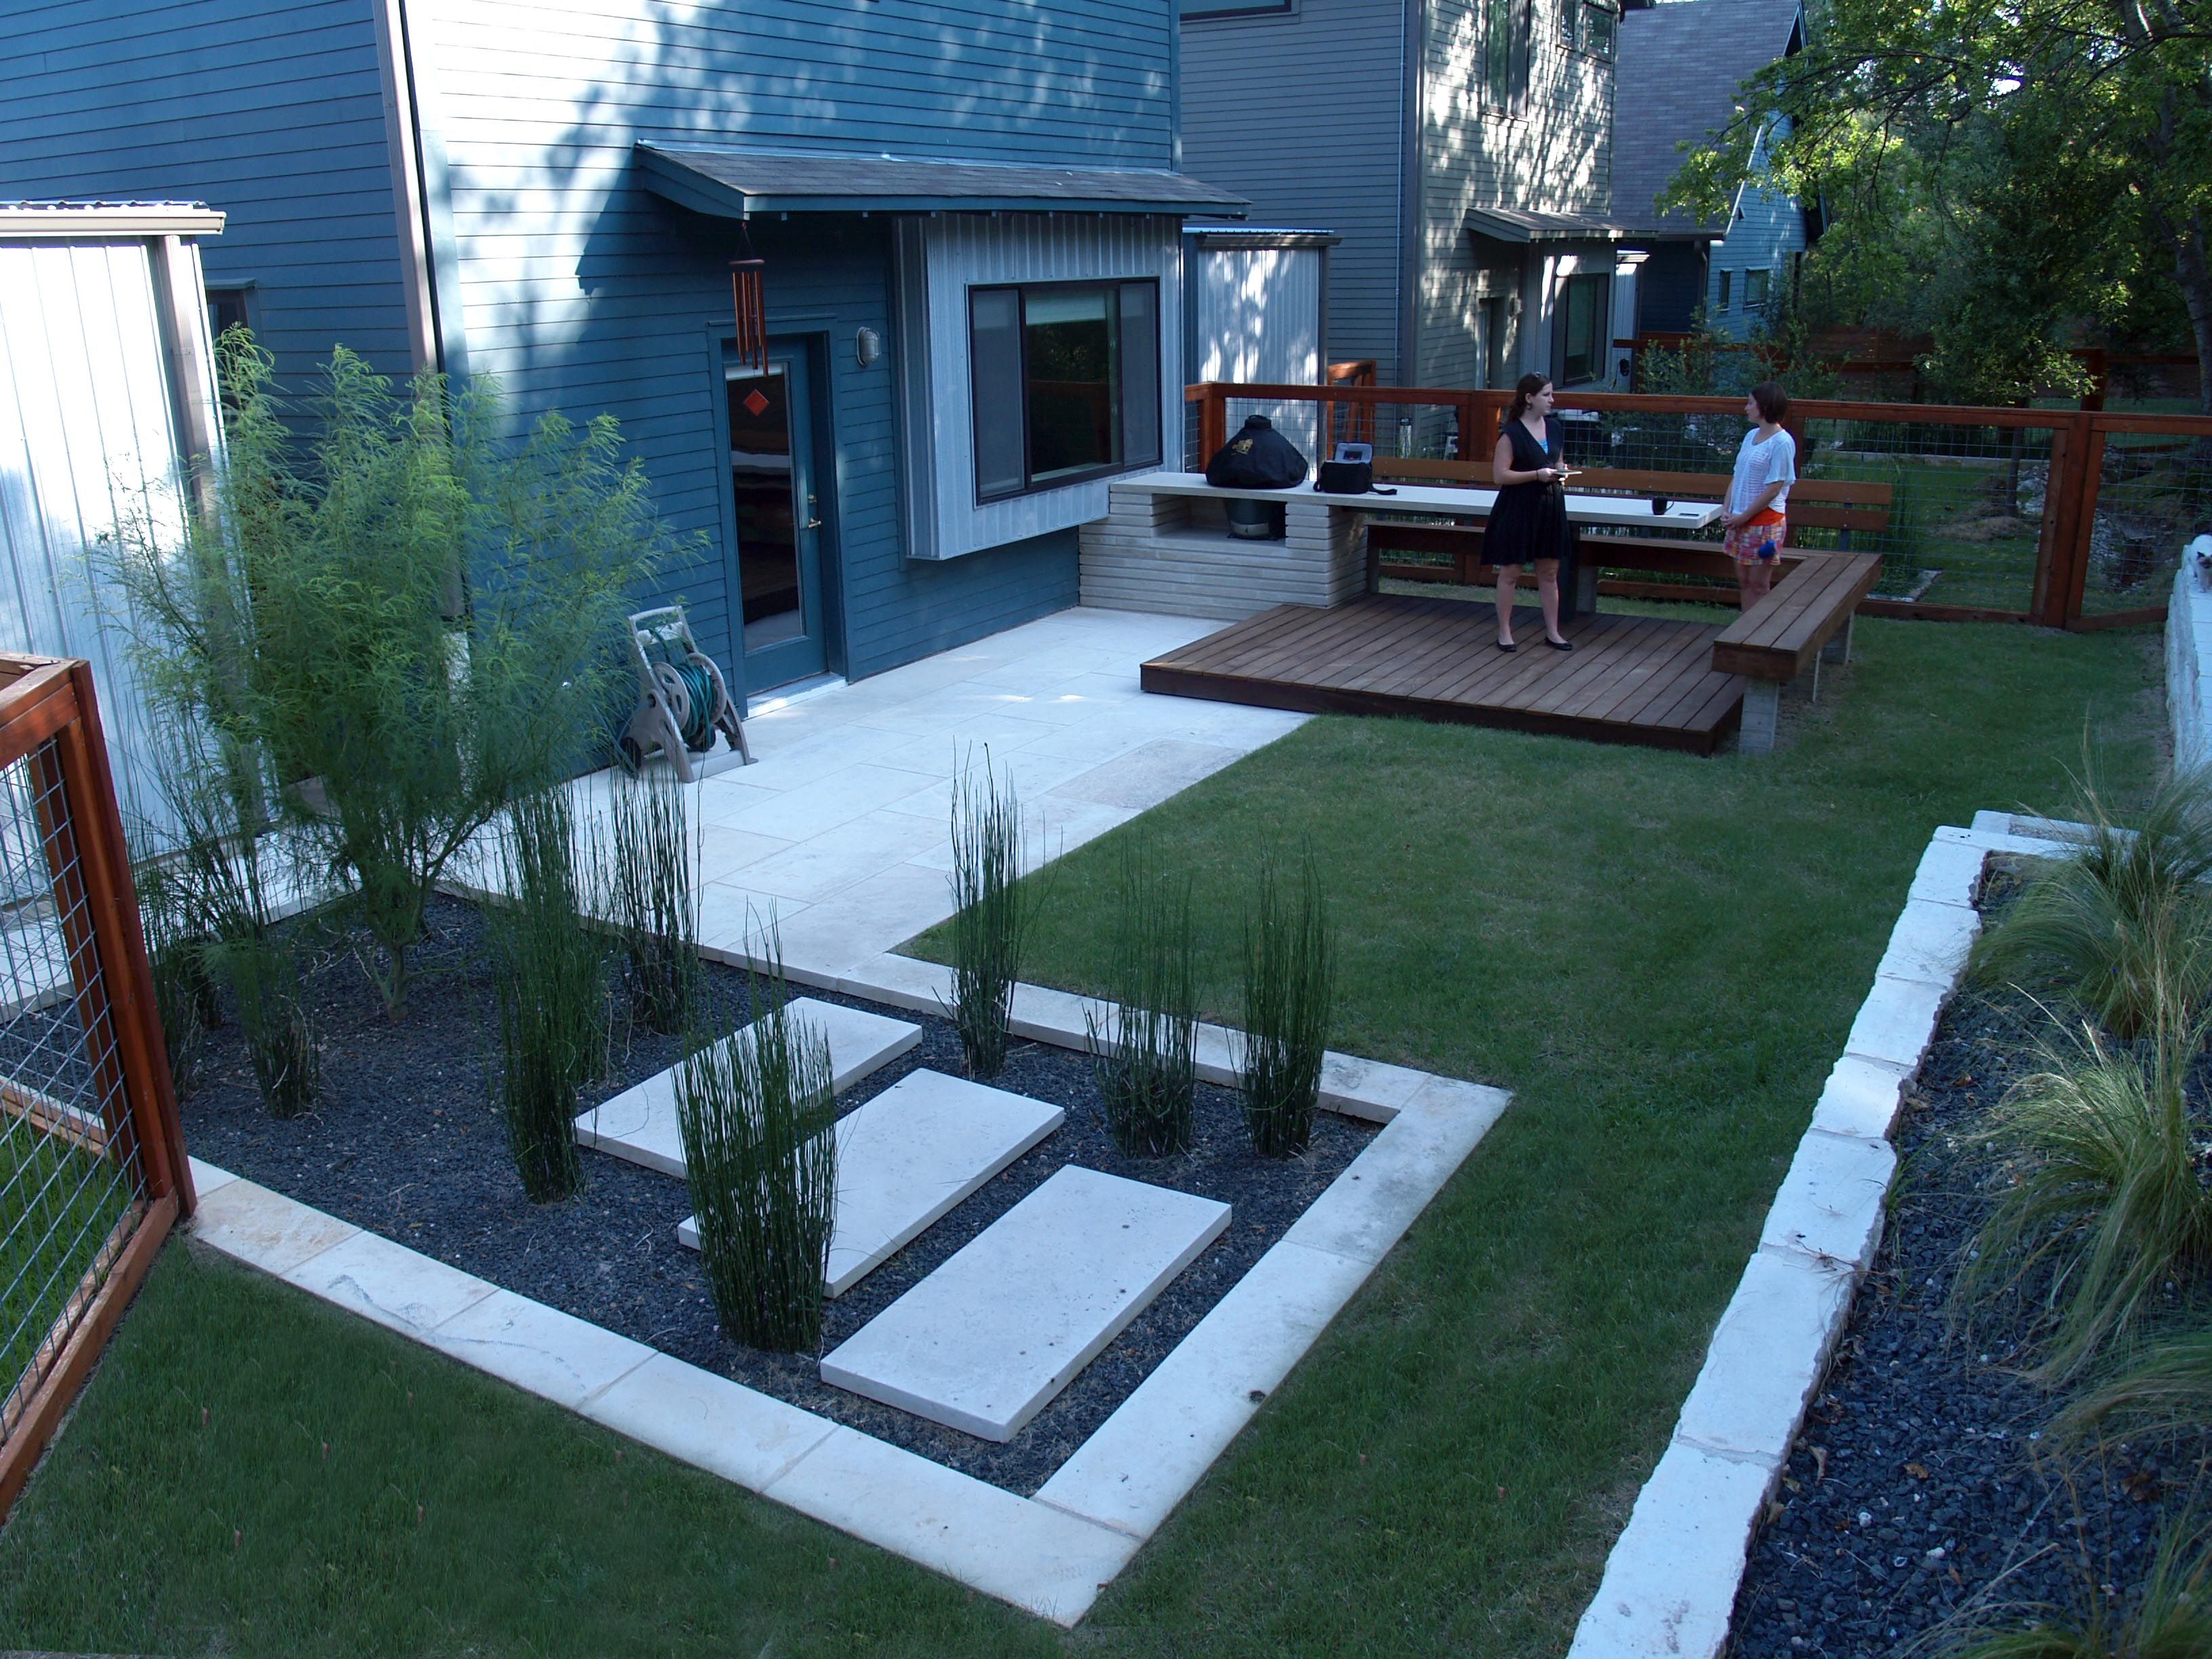 Modern Backyard Design Awesome Modern Small Backyard Design With Kitchen Dining And Living . Decorating Inspiration